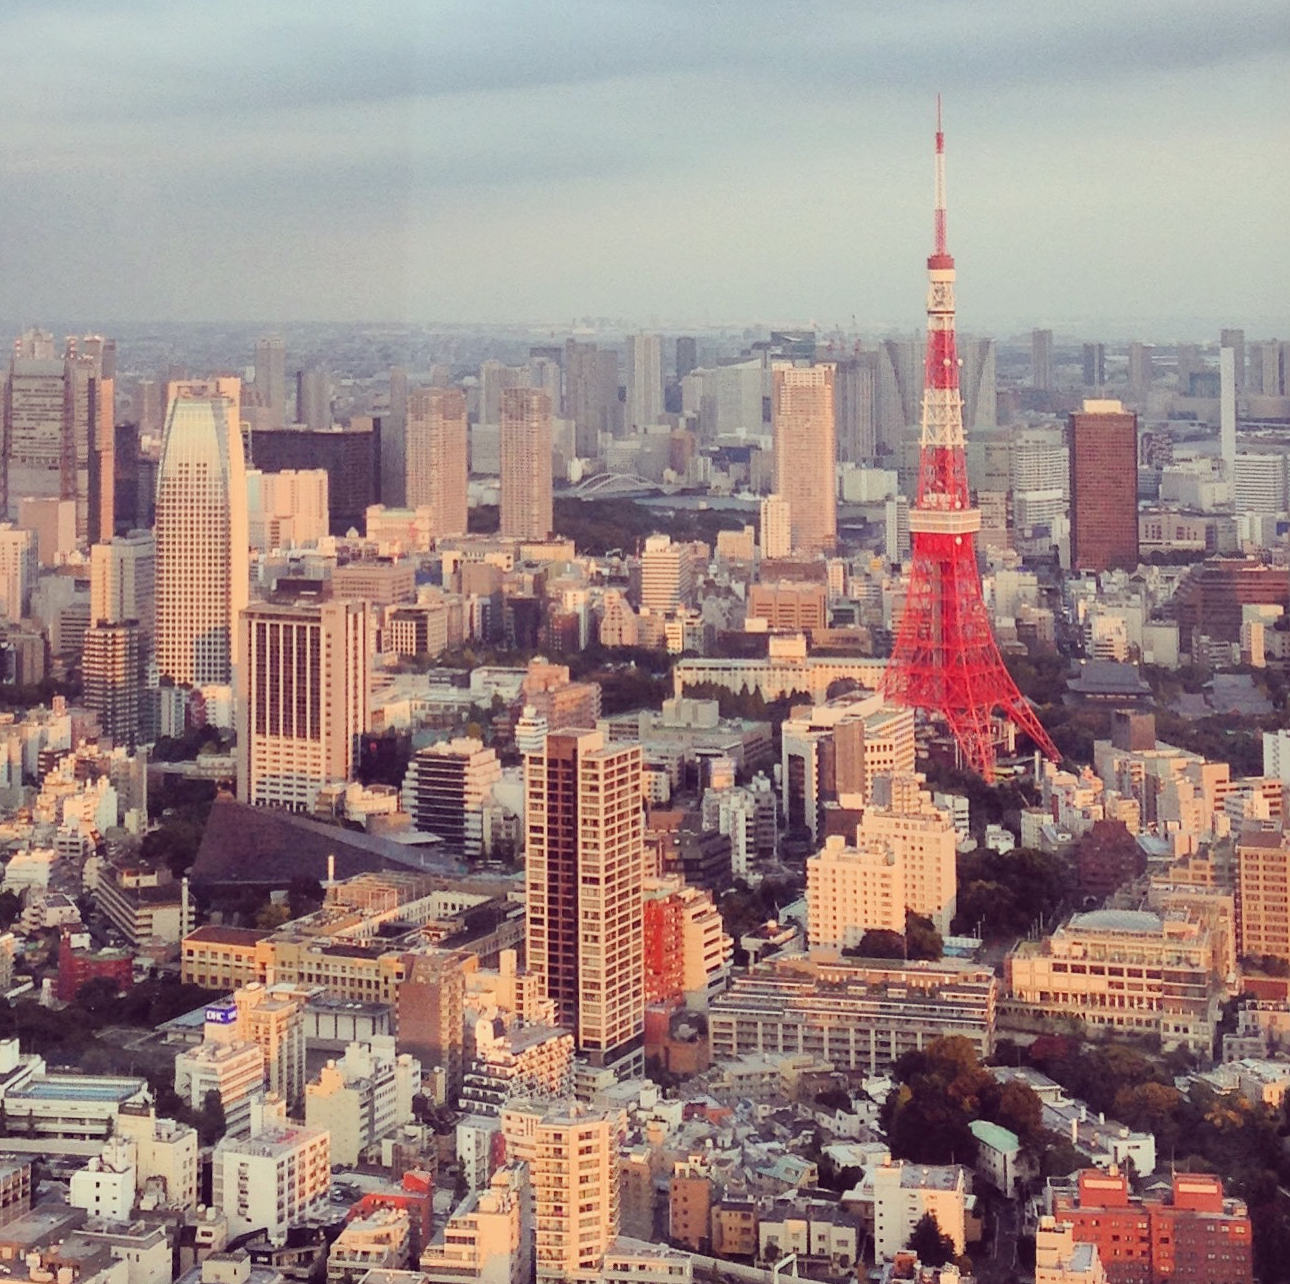 Taken at sunset from Mori Art Museum looking over to Tokyo Tower